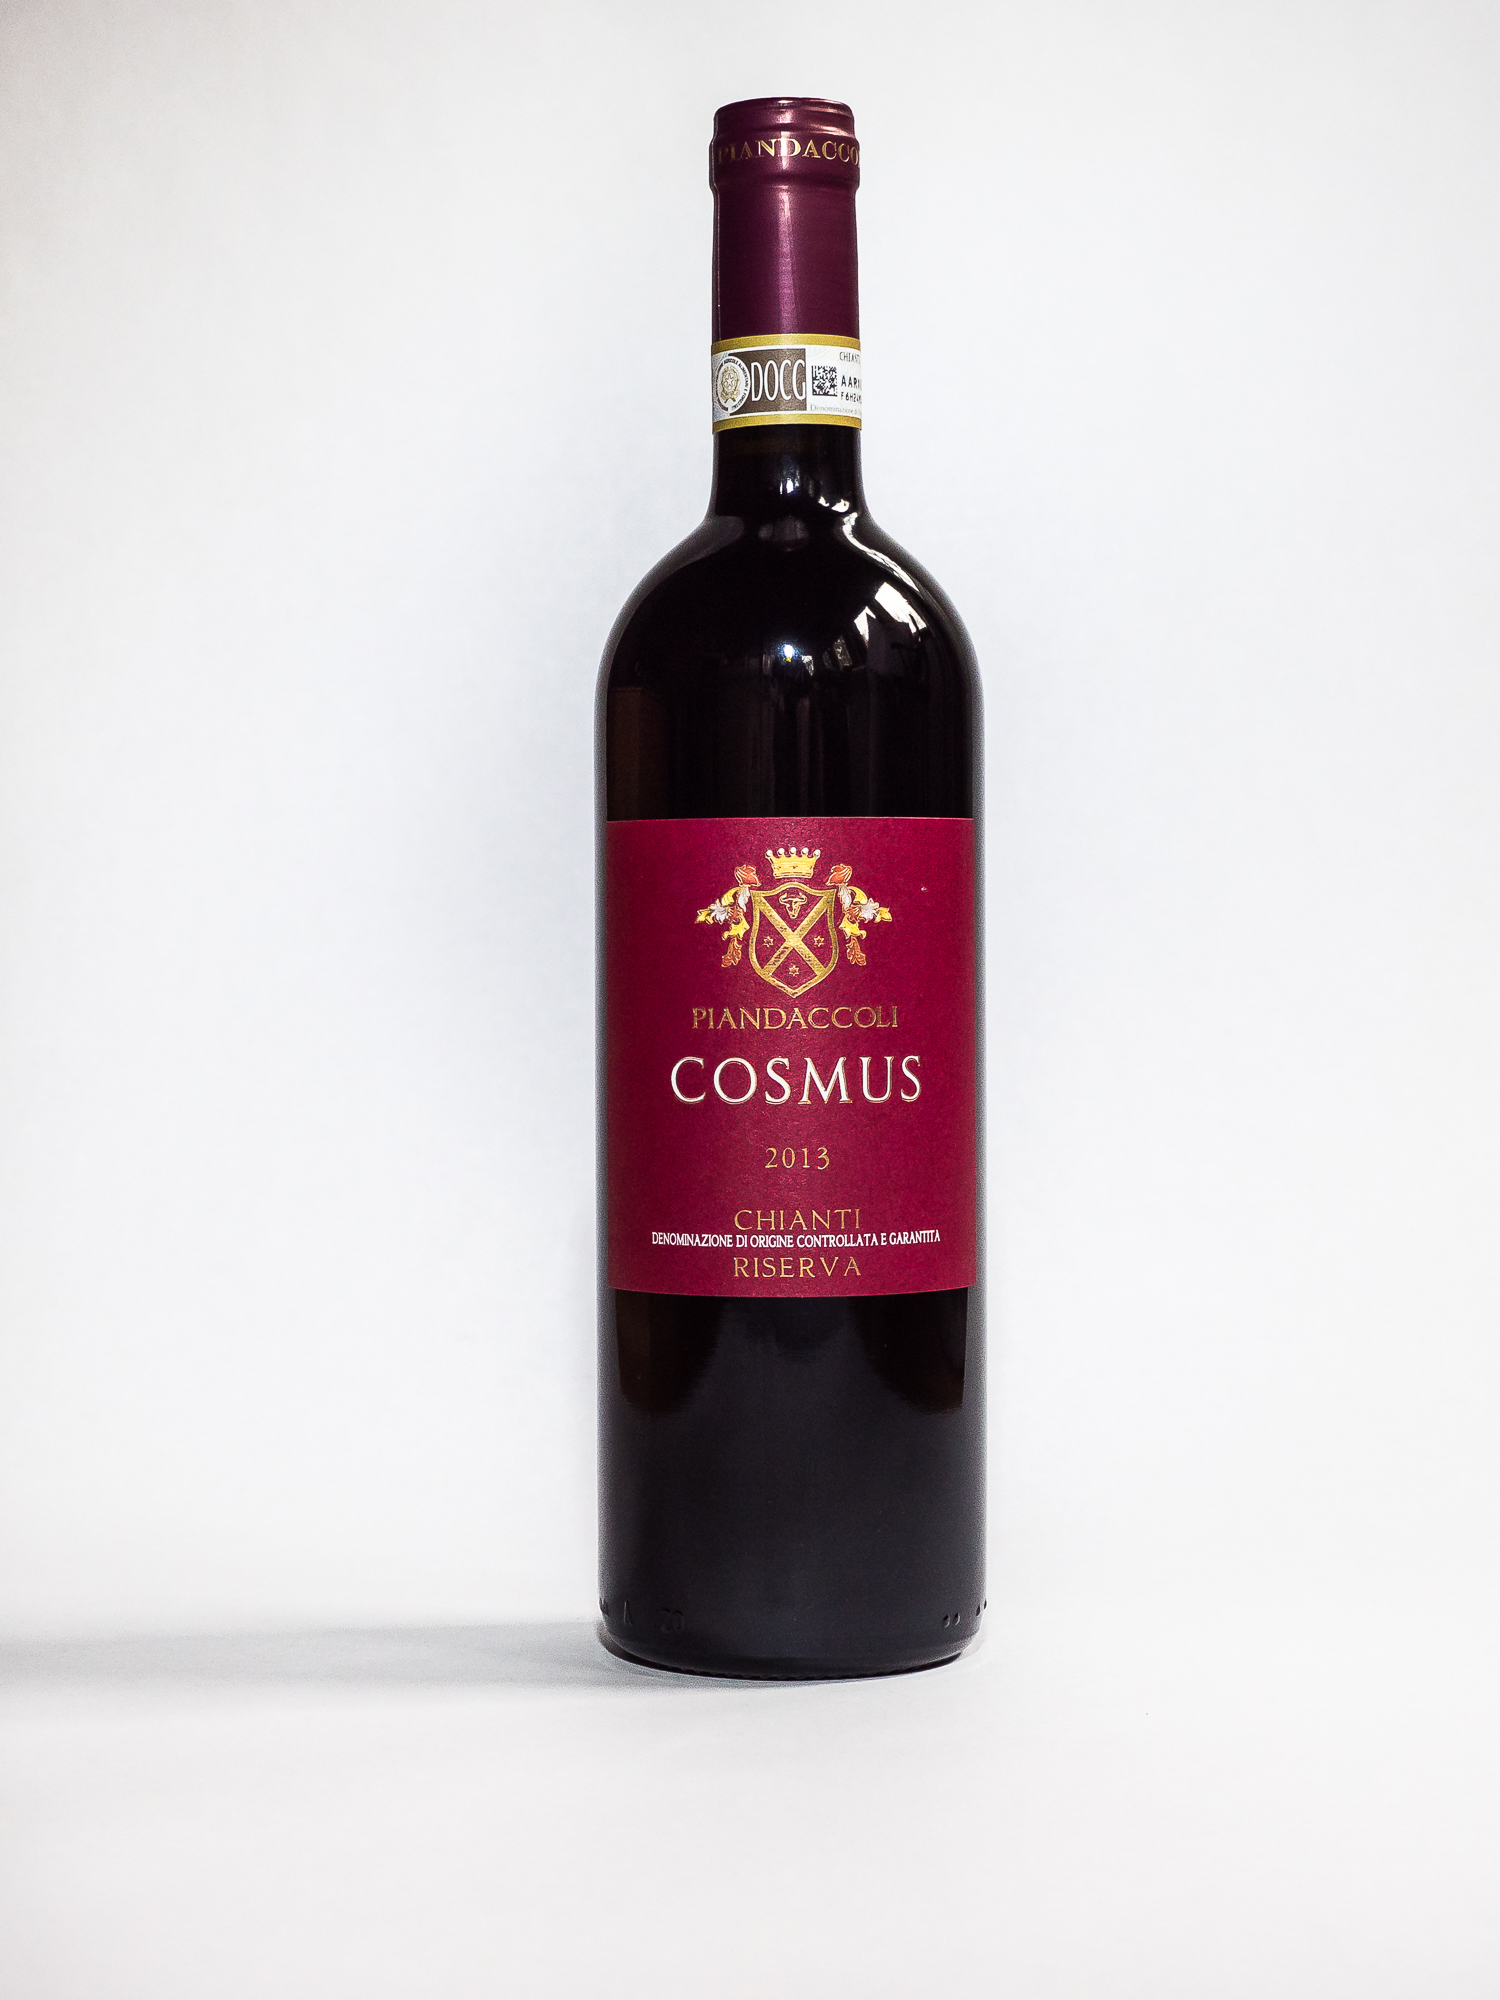 Cosmus Chianti 2013    Producer:   Azienda Agricola Piandaccoli    Region:  Tuscany  Grapes:  Sangiovese 100%  Characteristics:  The initial aroma is rich in cherries, black pepper and nutmeg and develops into delicate notes given by the aging in French barrels. A delicate structure and soft tannins make this wine original, with a well-balanced perception of the alcohol content and a remarkable persistent aroma.